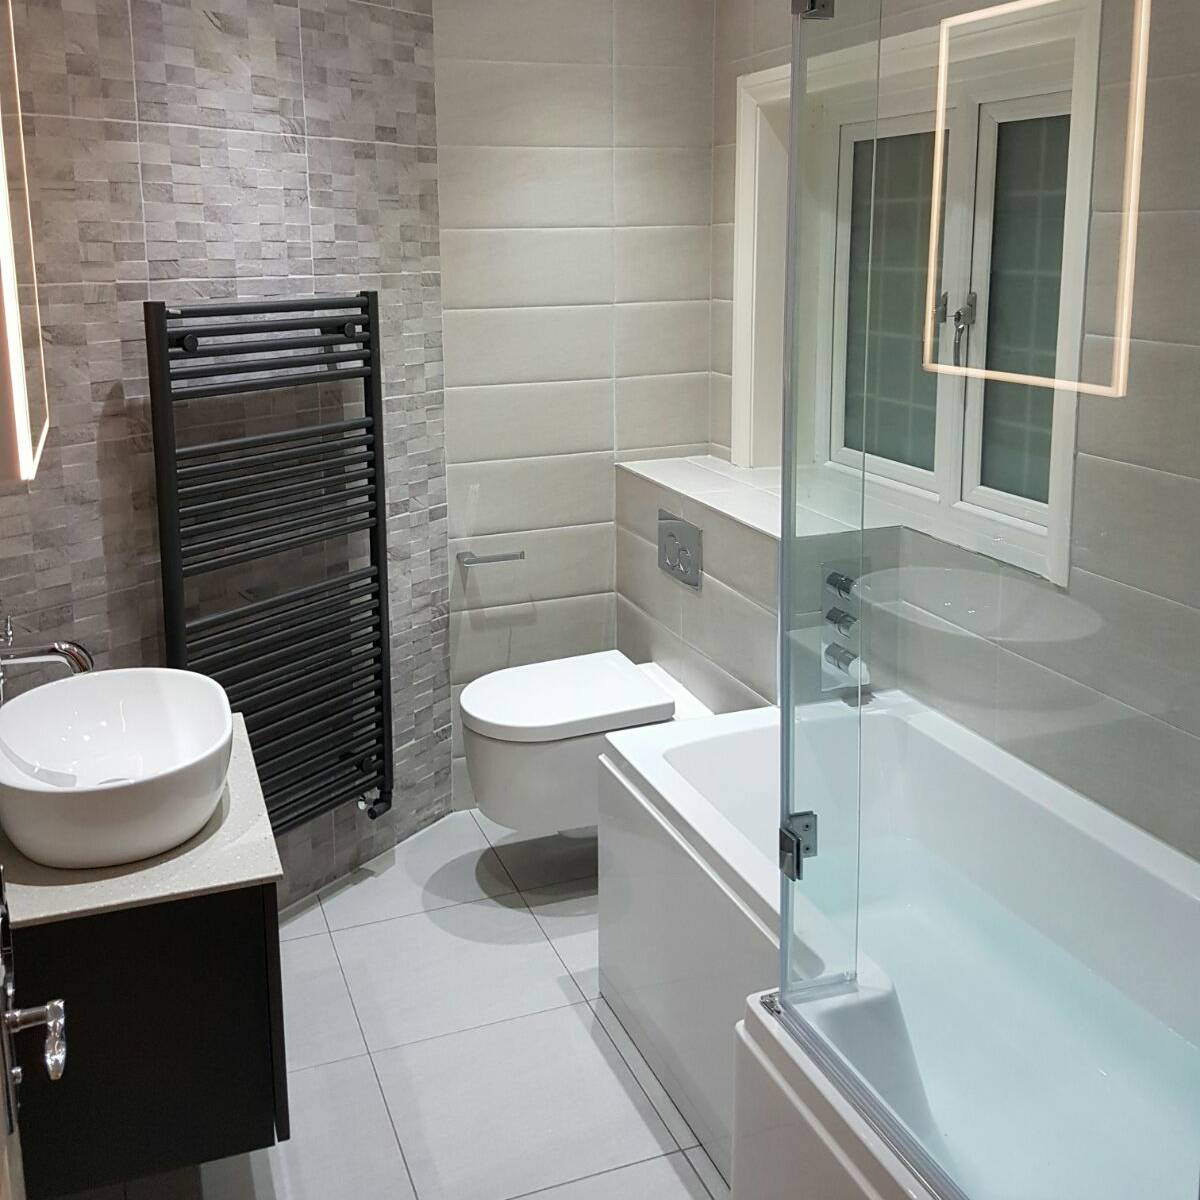 Bathroom Interiors Prepossessing Bathroom Fitters Birmingham  Bathrooms Wet Rooms Ensuites Review